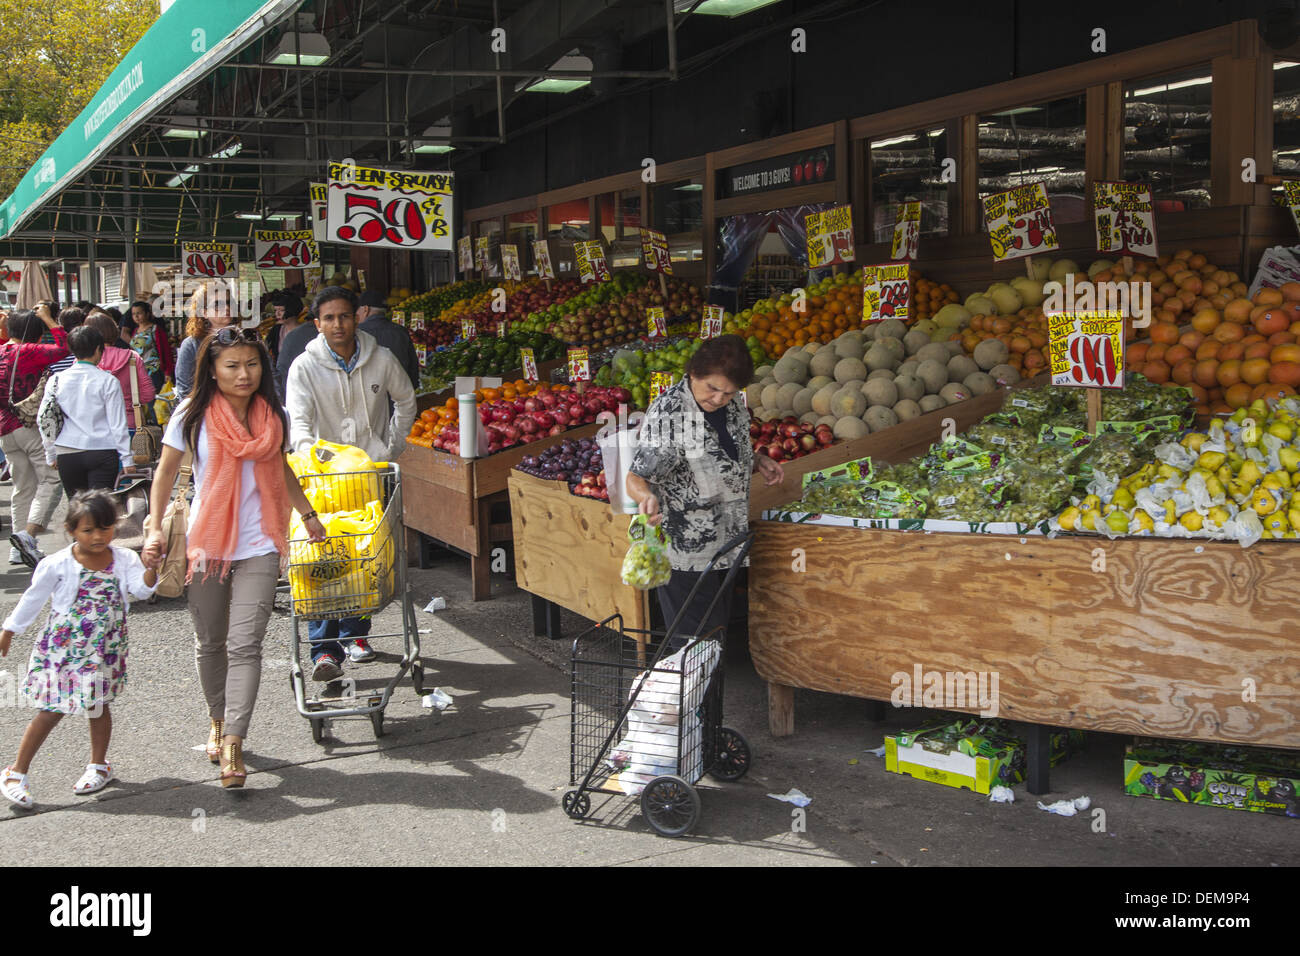 grocery Shop) (america) (fruits) Stock Photos & (grocery Shop ...